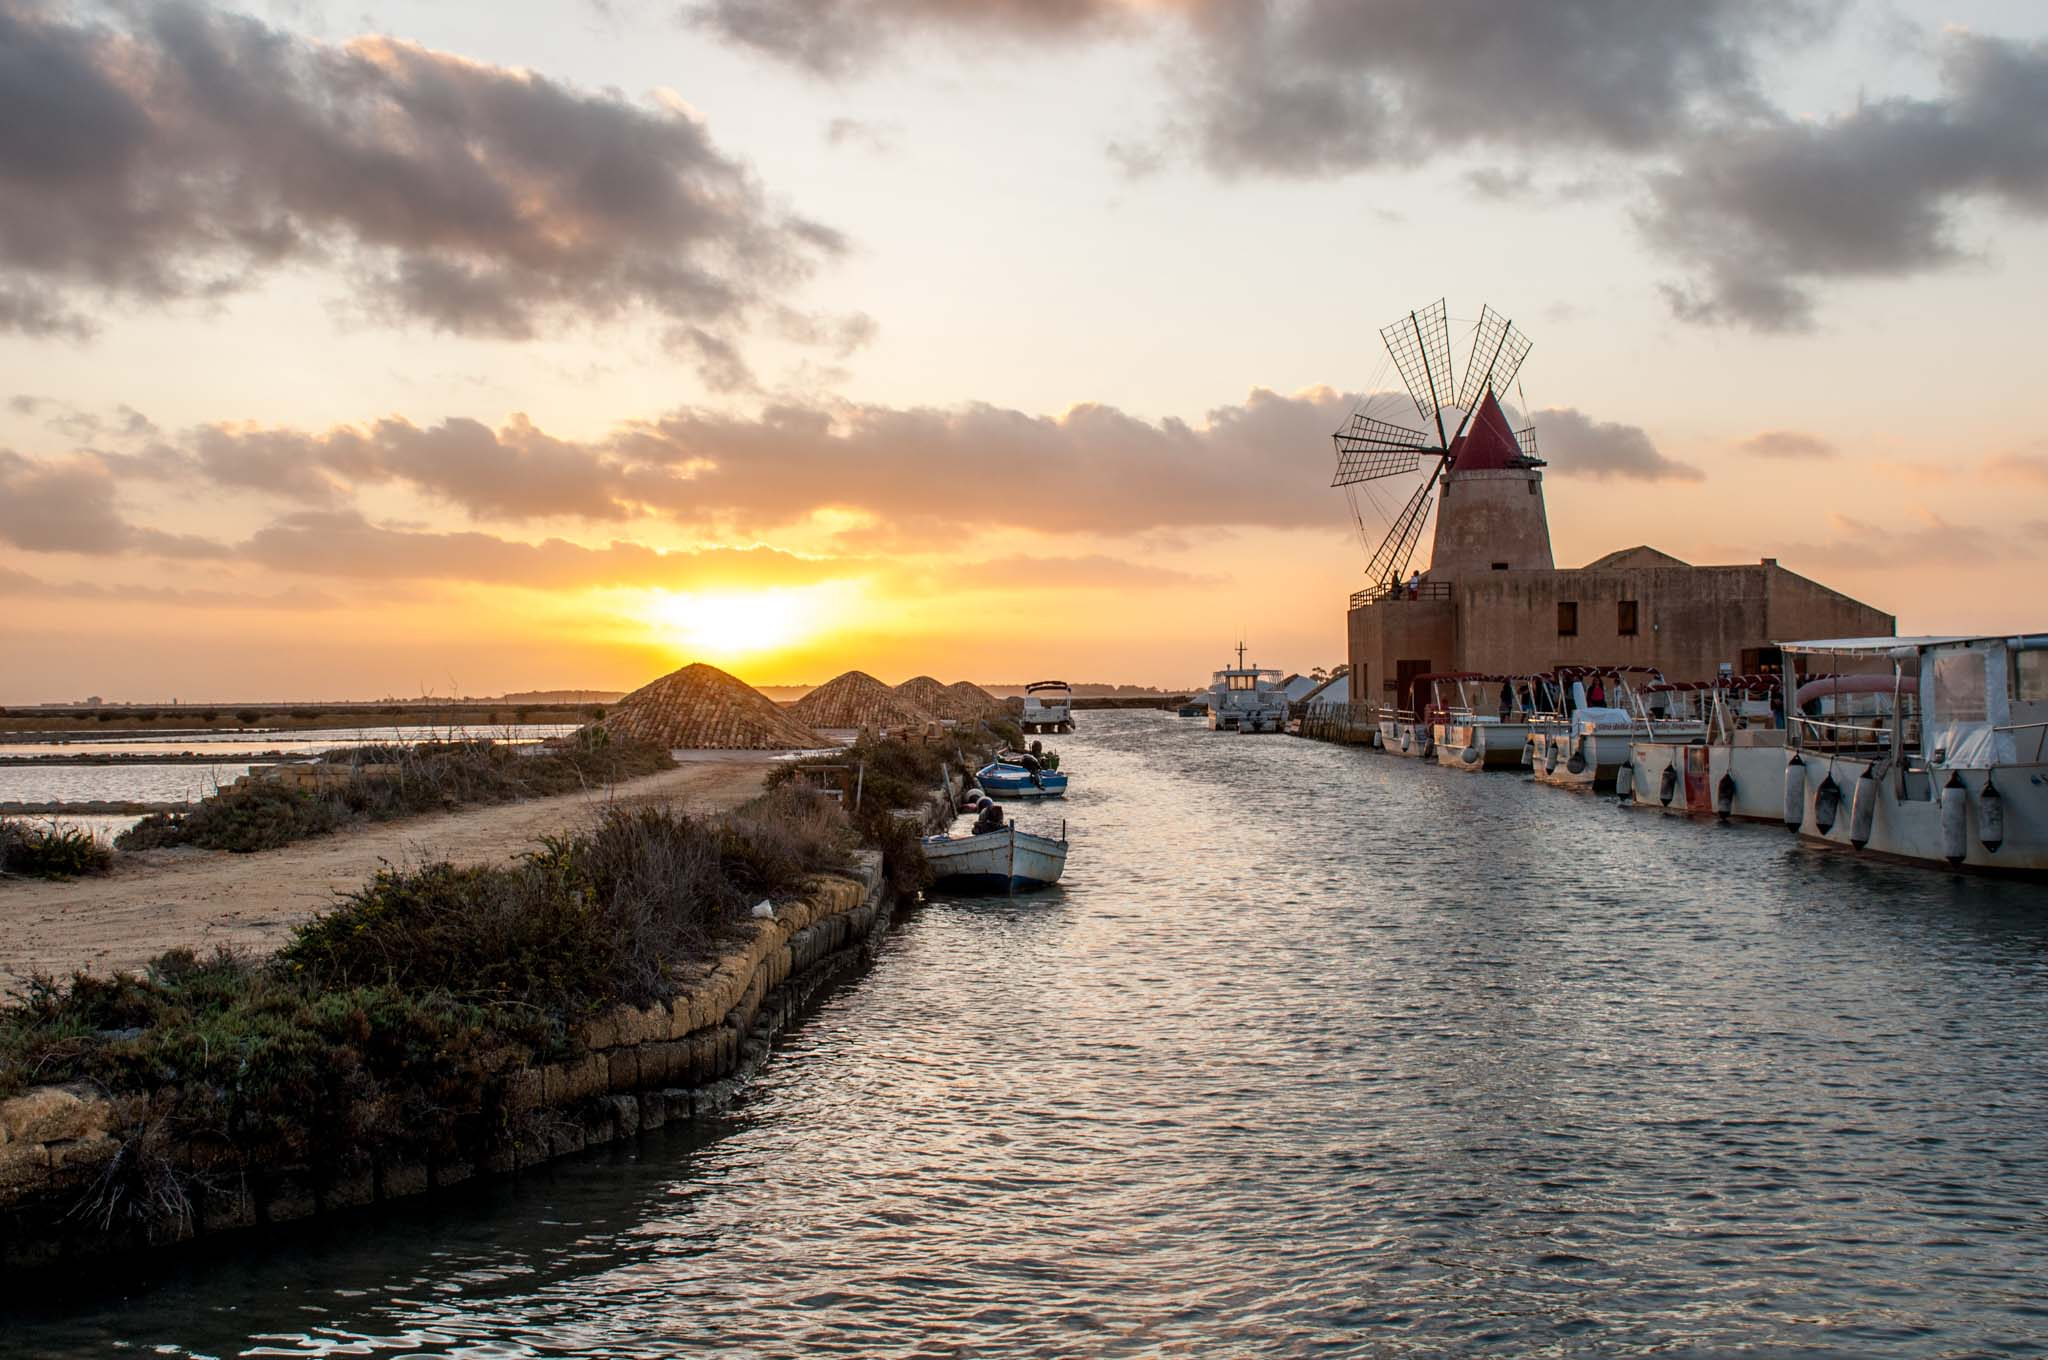 Salt mill and sea at sunset